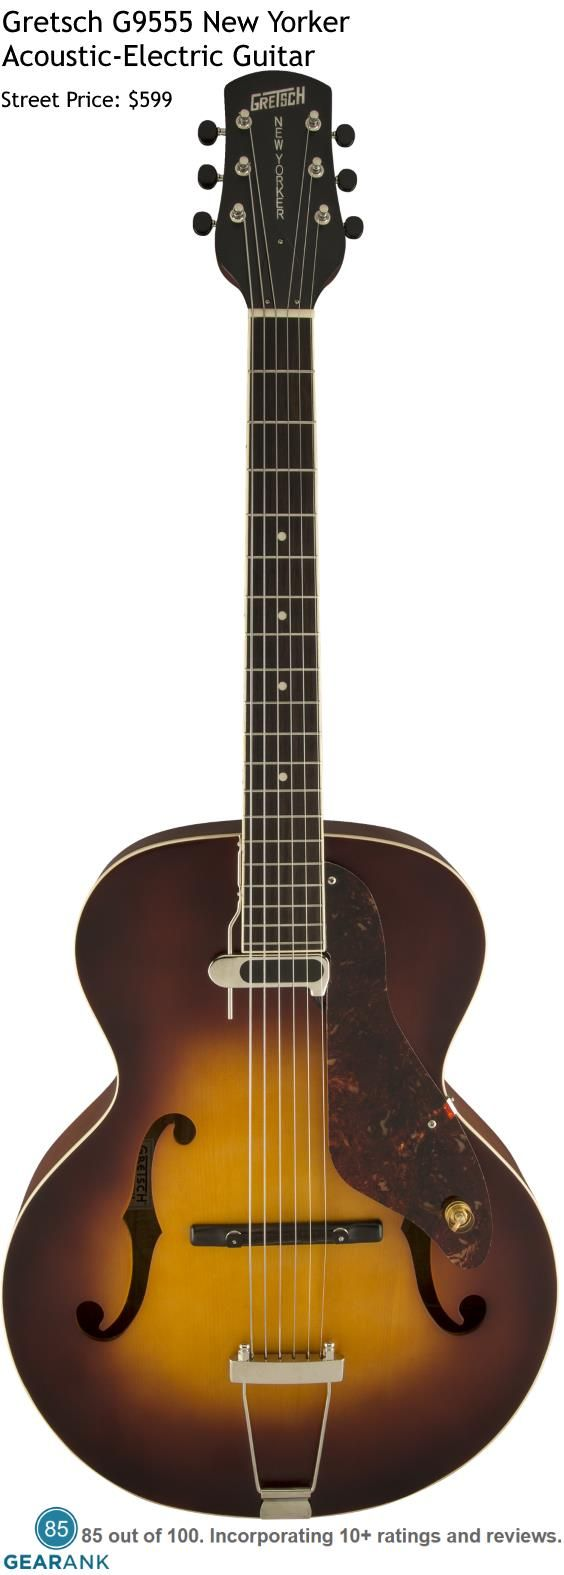 Gretsch G9555 New Yorker. This is a modern release of the 1950s classic New Yorker.  Street Price $599.  For a detailed Guide to Acoustic Guitars see https://www.gearank.com/guides/acoustic-guitars